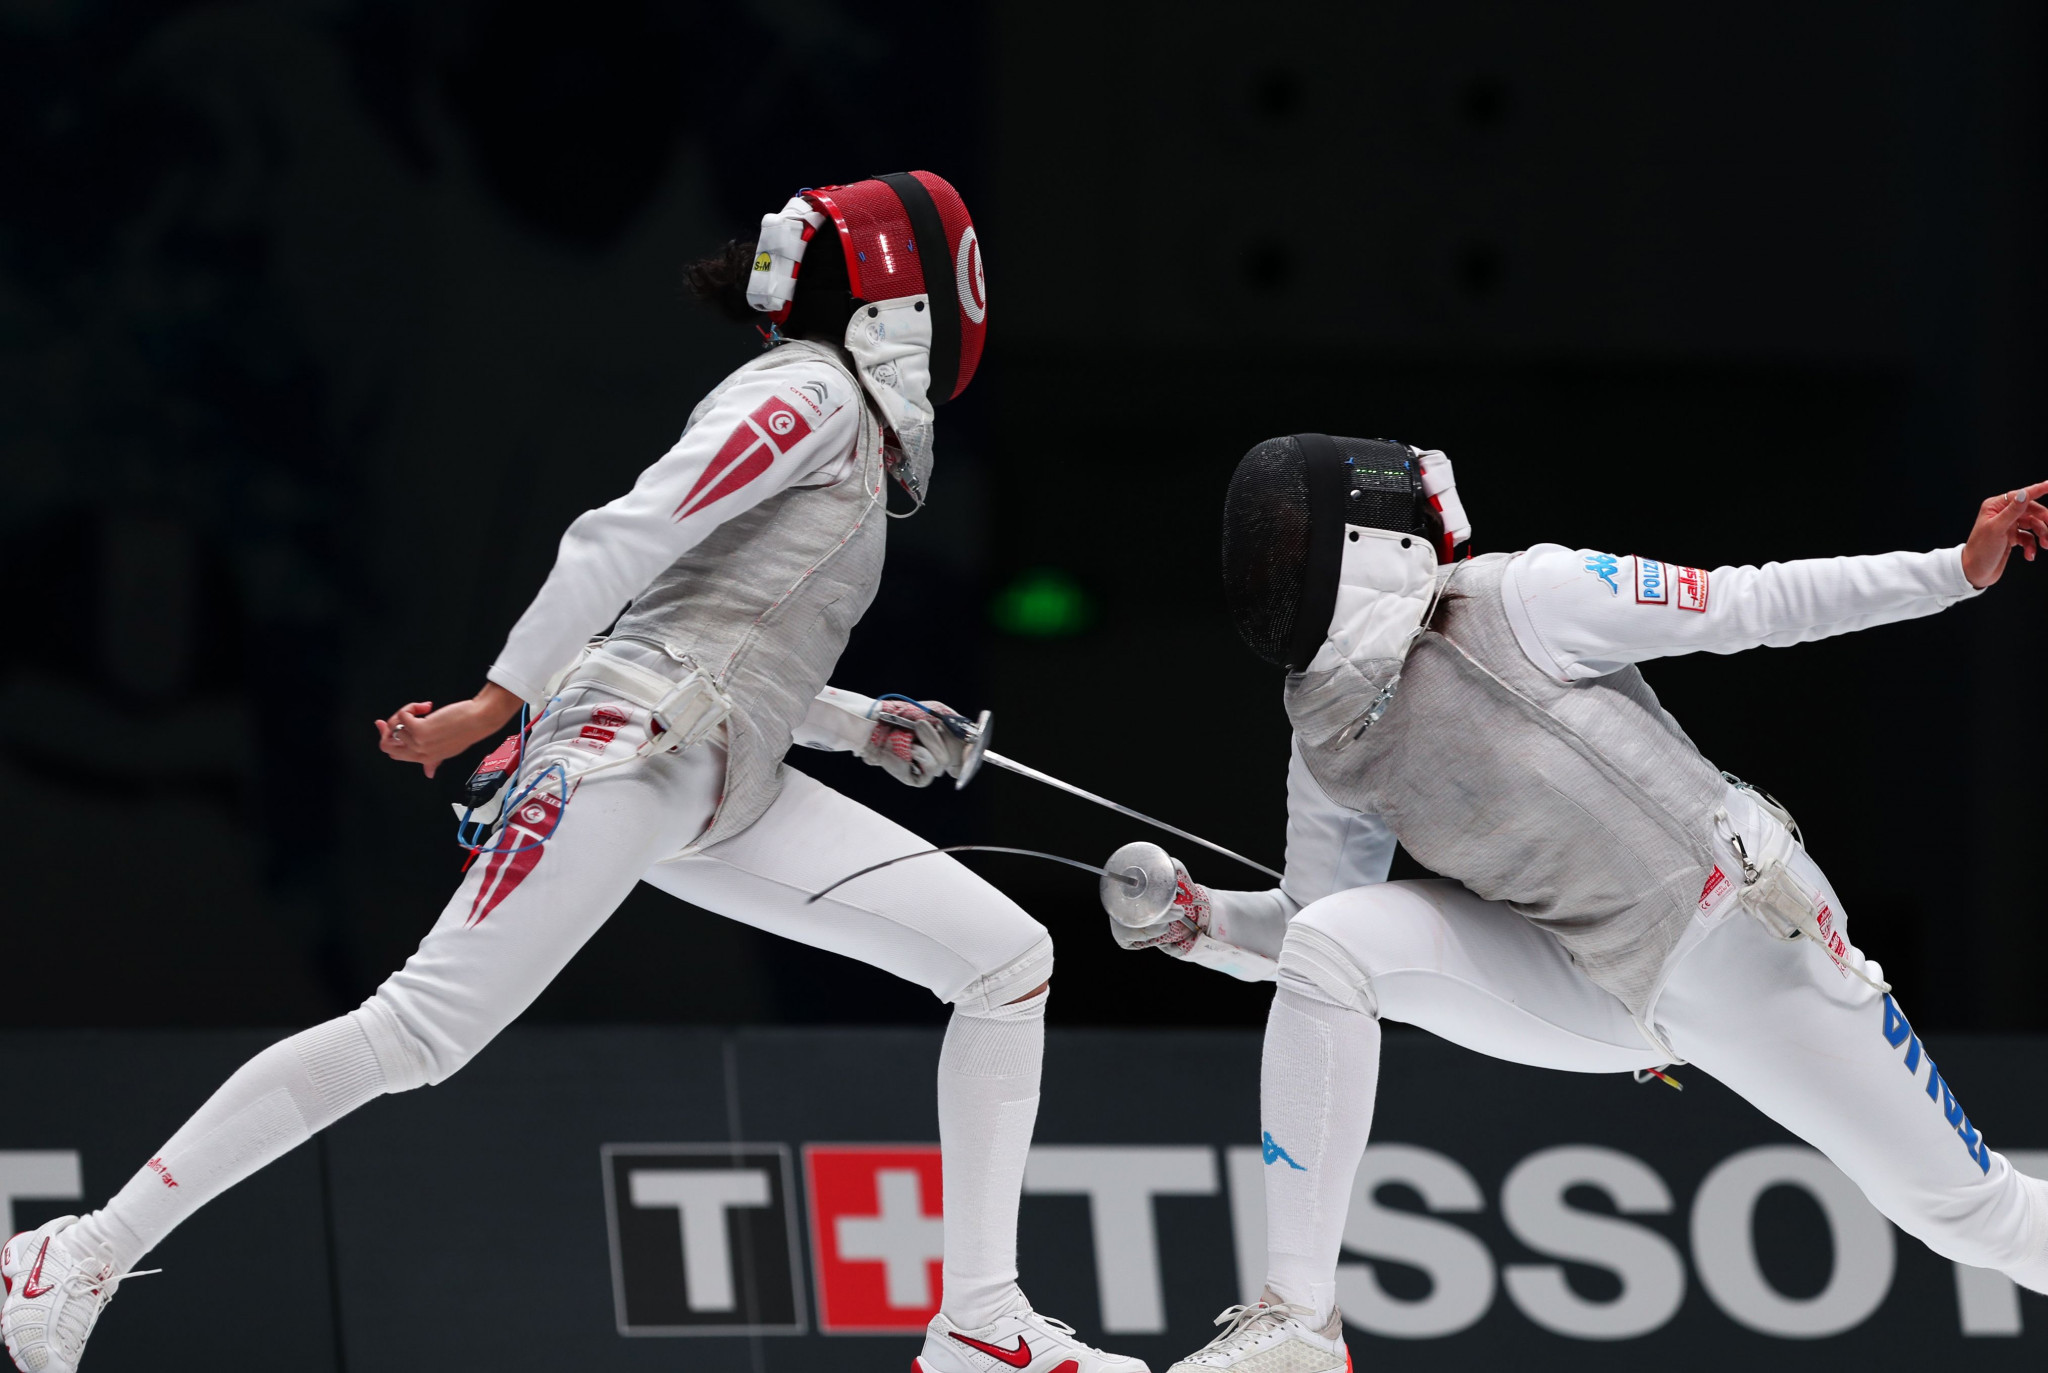 Rio 2016 Olympic bronze medallist Inès Boubakri claimed the women's foil title as action continued today at the African Fencing Championships in Bamako ©Getty Images